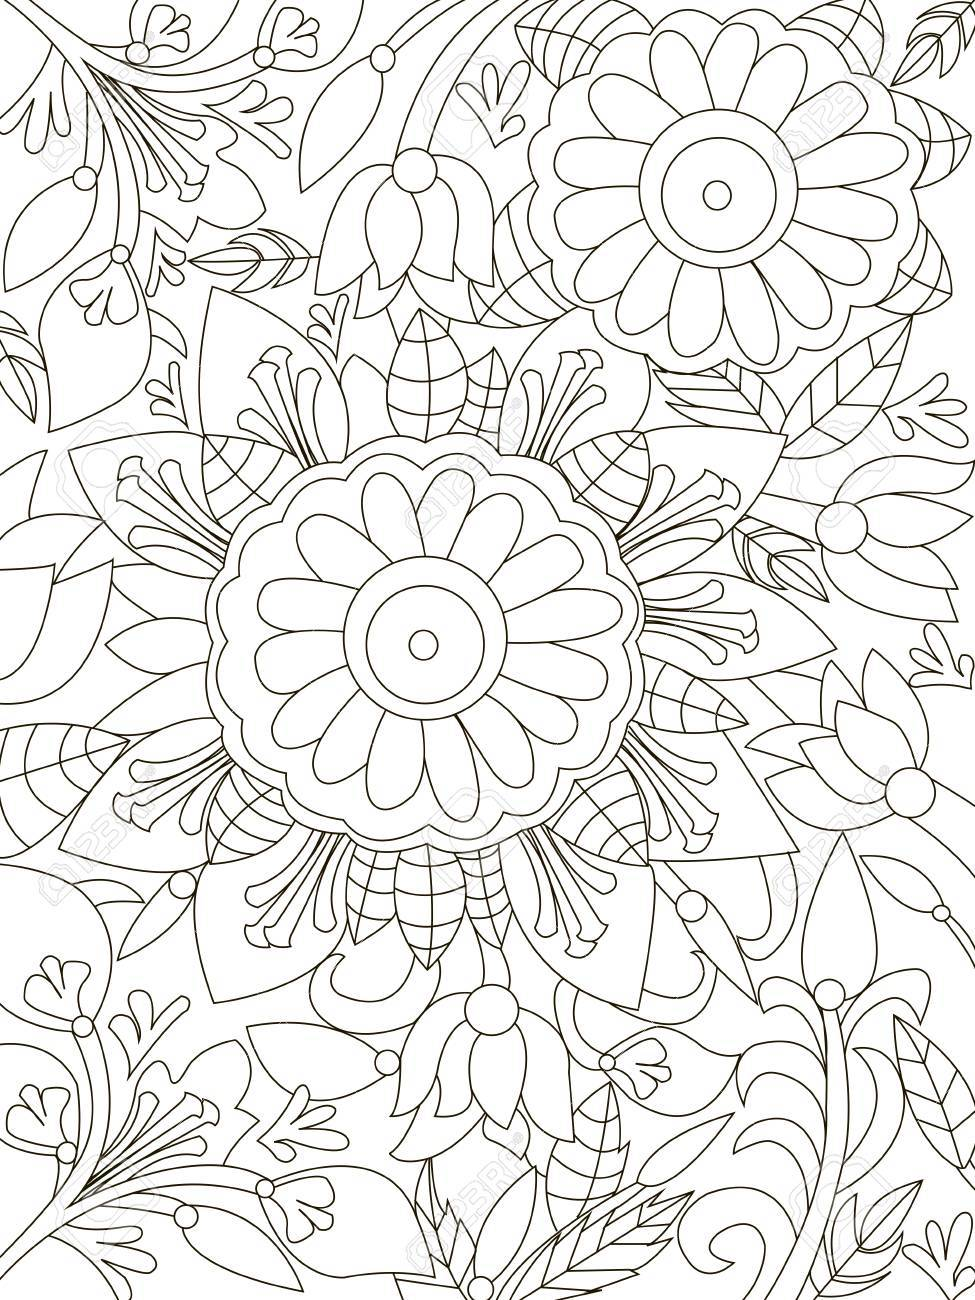 Mandala Coloring Book For Adults Vector Illustration Anti Stress Adult Zentangle